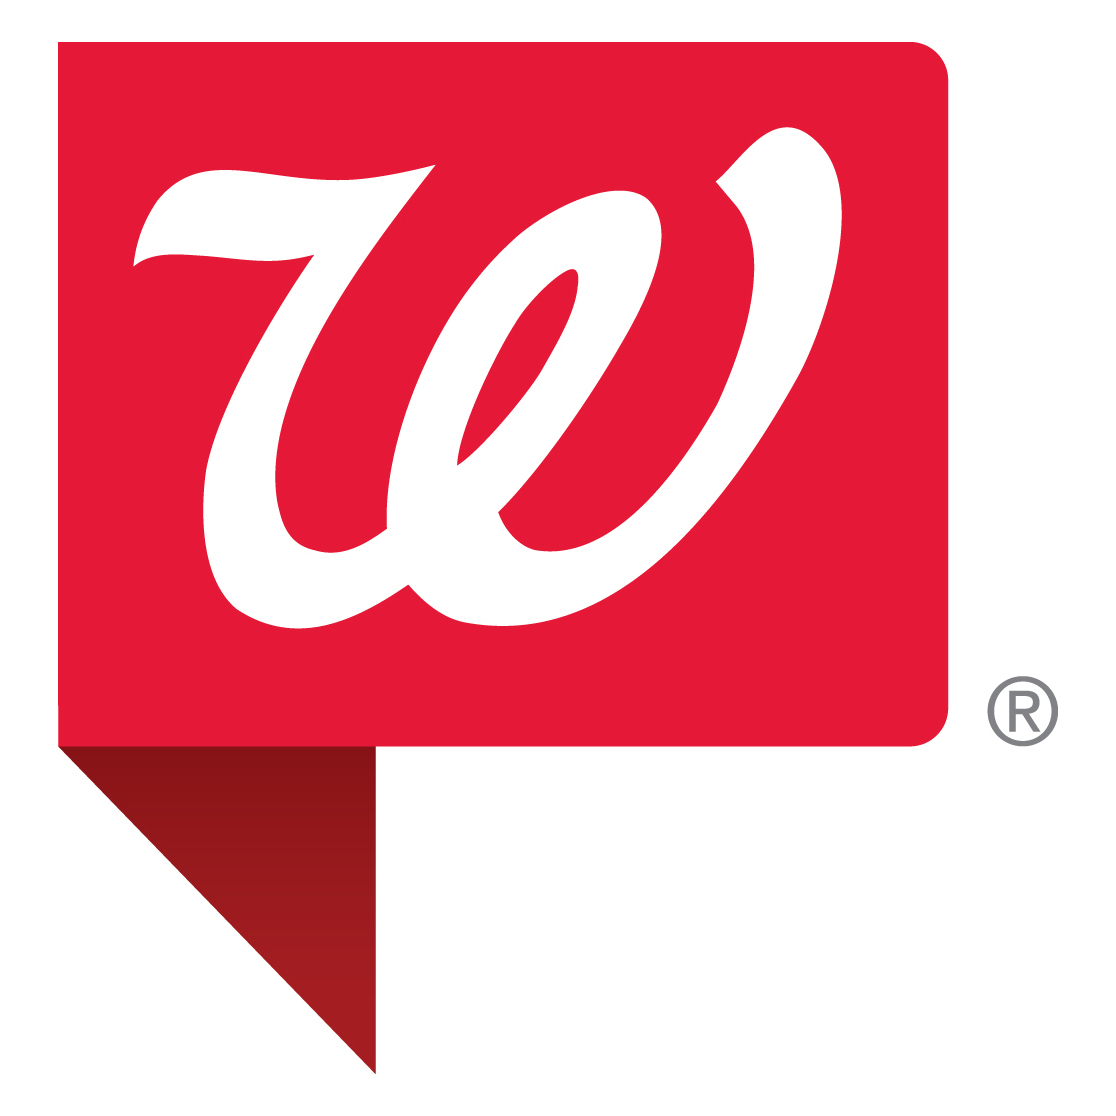 Walgreens - Albuquerque, NM - Pharmacist